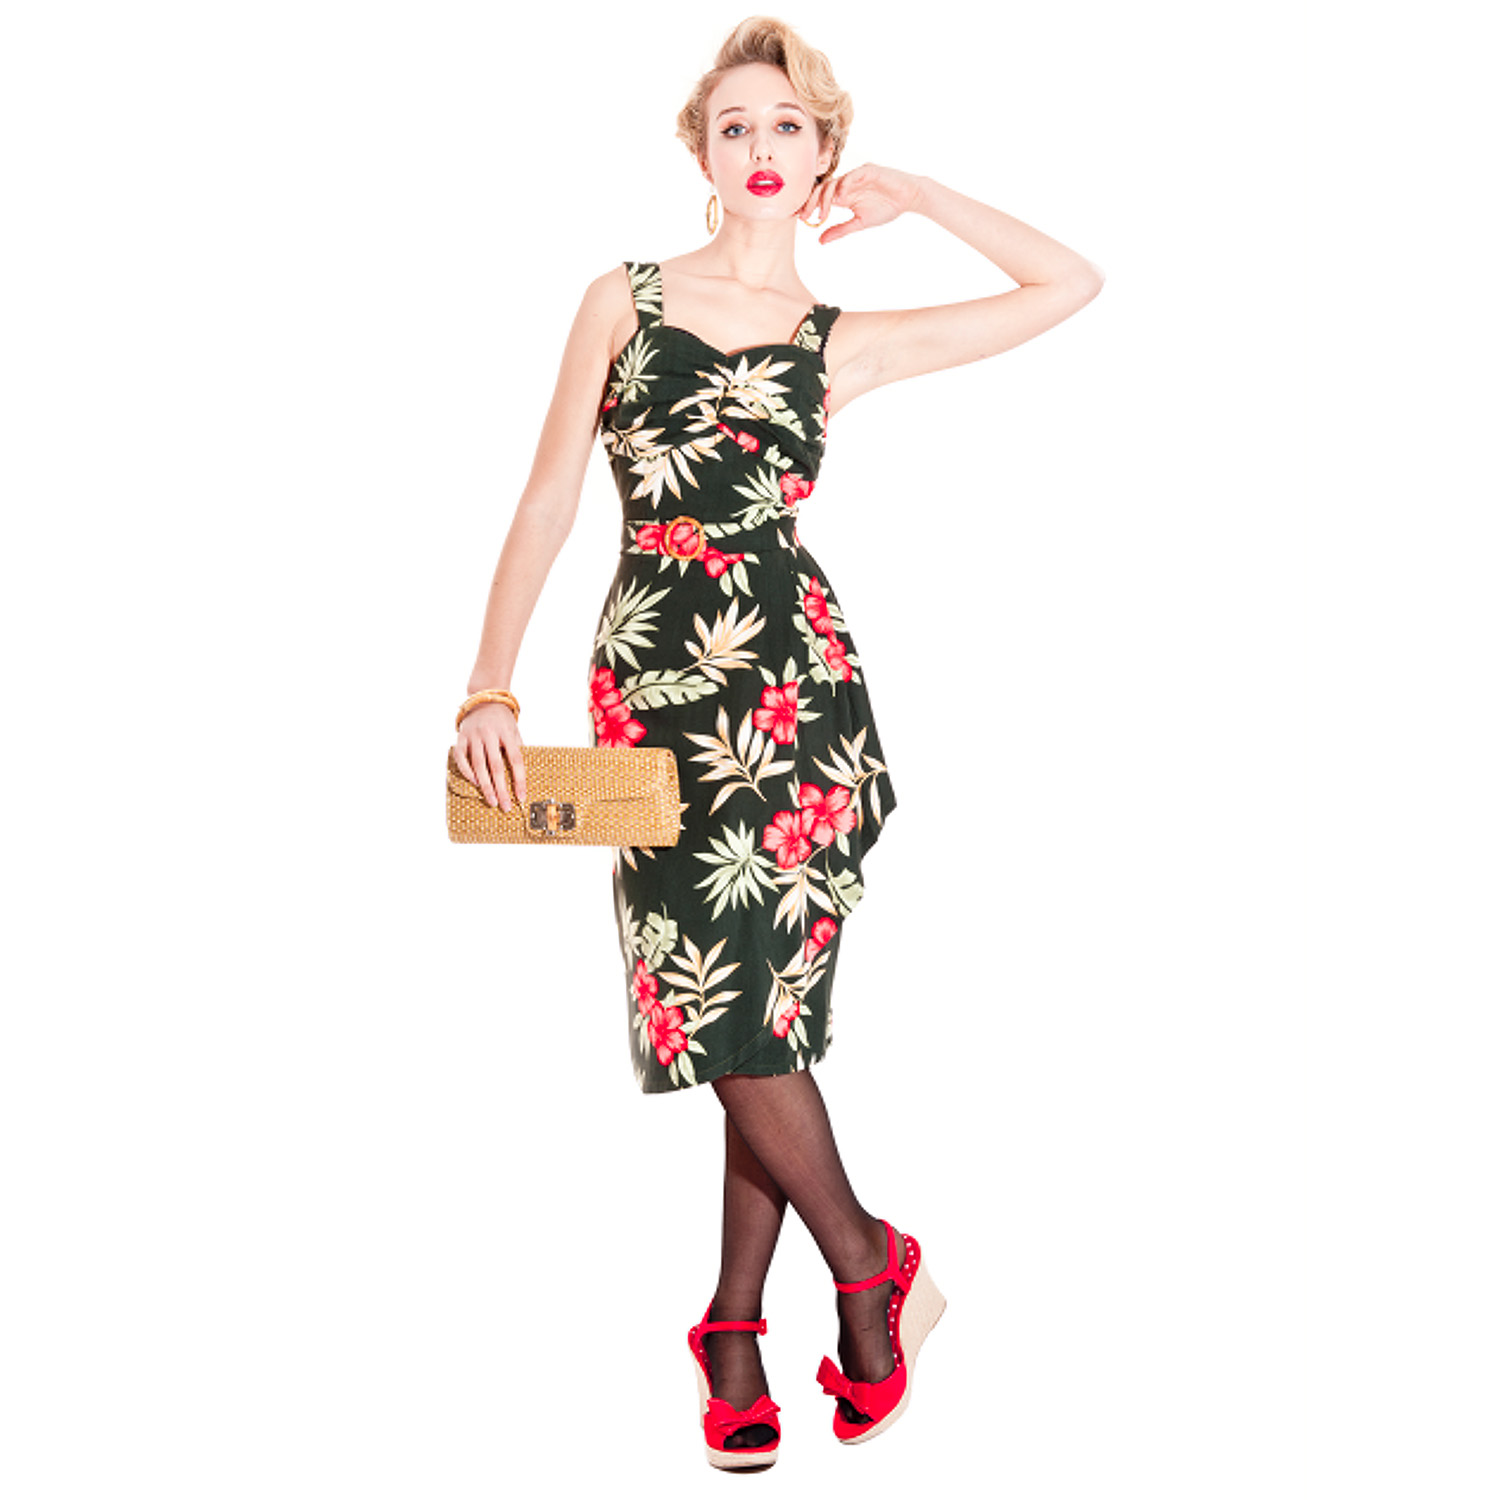 Modern dress wear - Vintage Style Clothing Tumblr Modern Vintage Style Clothing